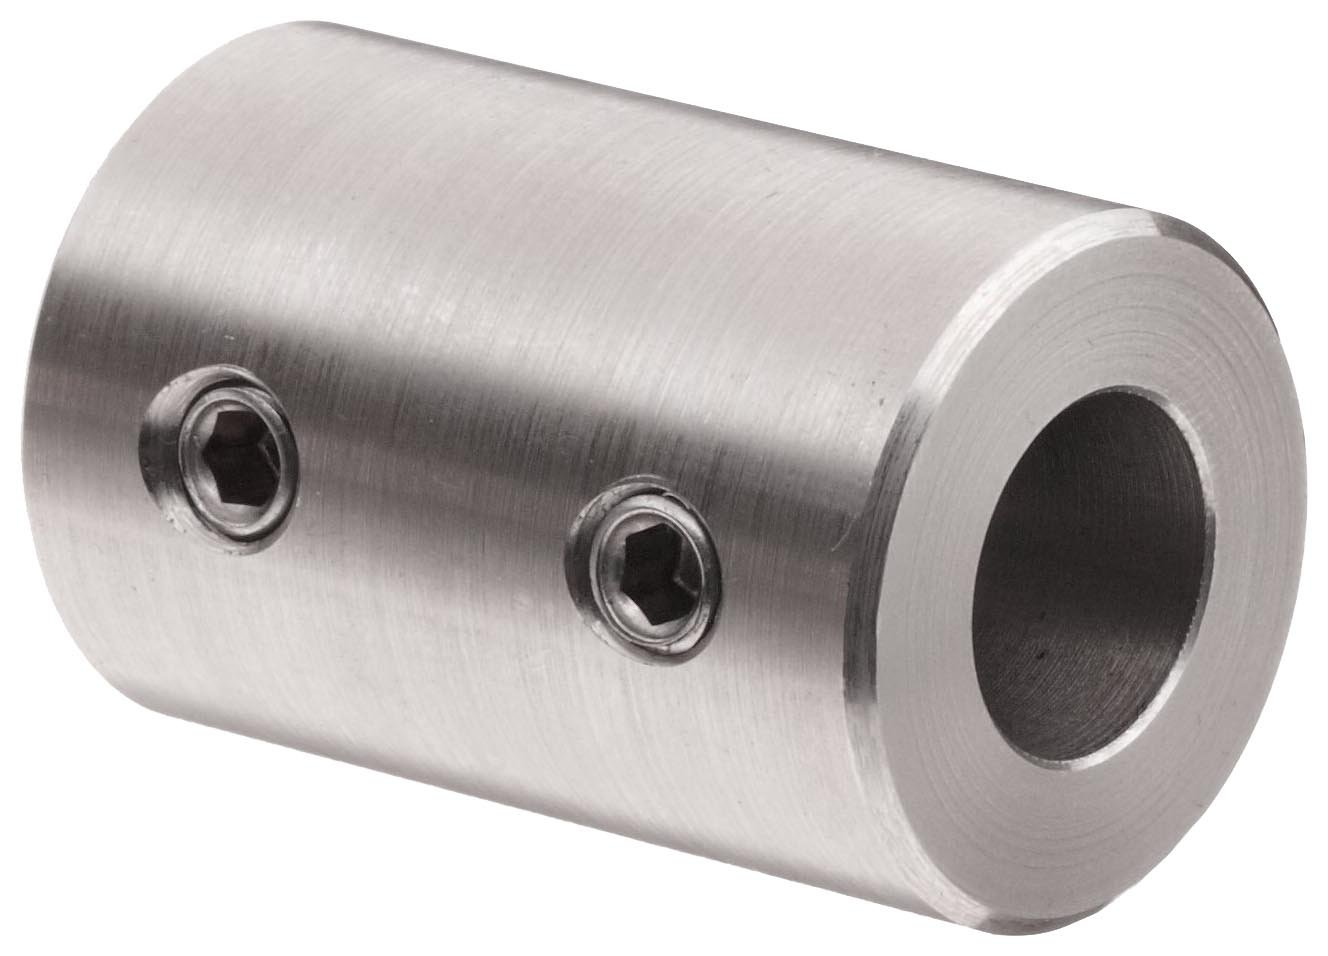 1-1//2 OD With 5//16-18 x 3//8 Set Screw 3//4 Bore 1-1//2 OD Climax Metal Products Climax Metal RC-075-S  Coupling 3//4 Bore Stainless Steel Grade 303